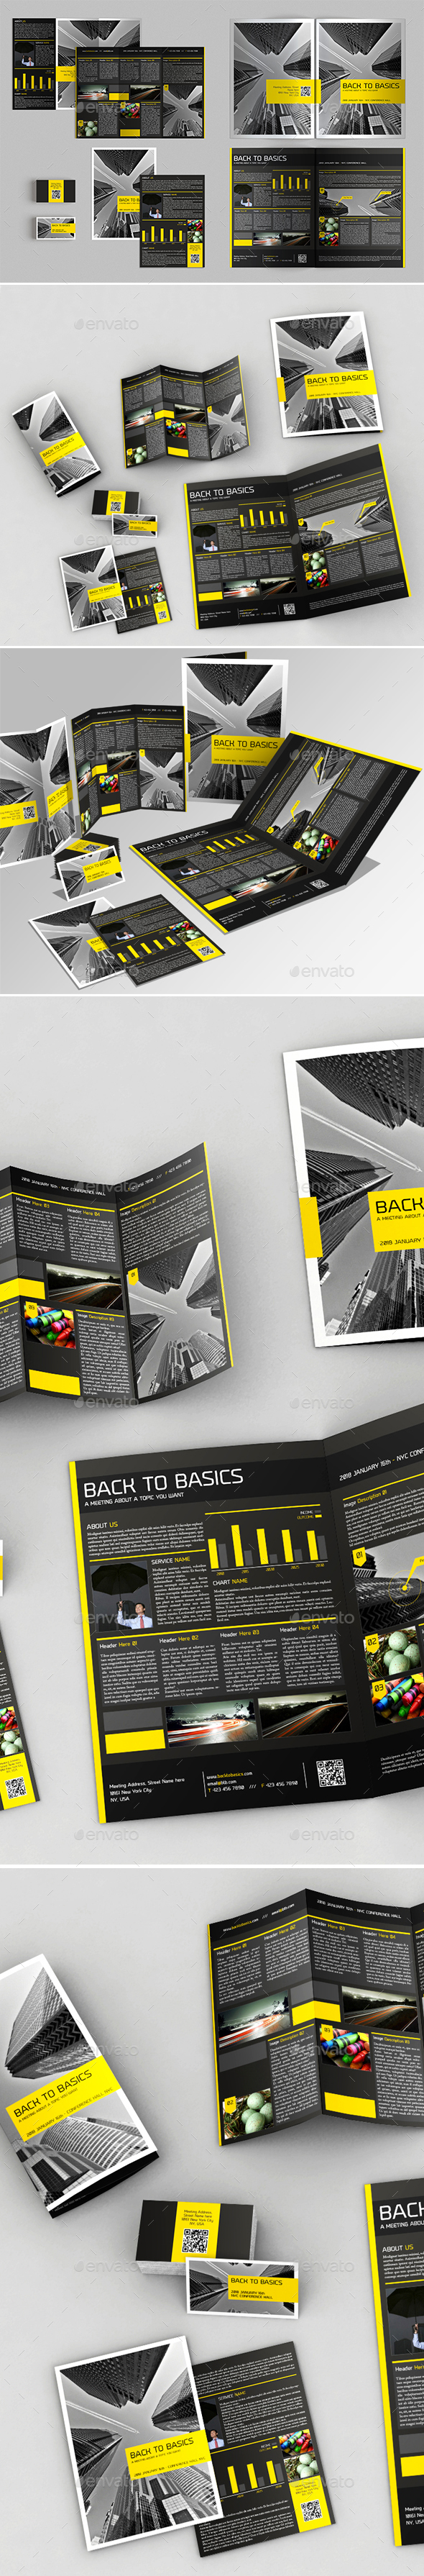 4 Pages Brochure + Trifold + Flyer + Business Card - Brochures Print Templates